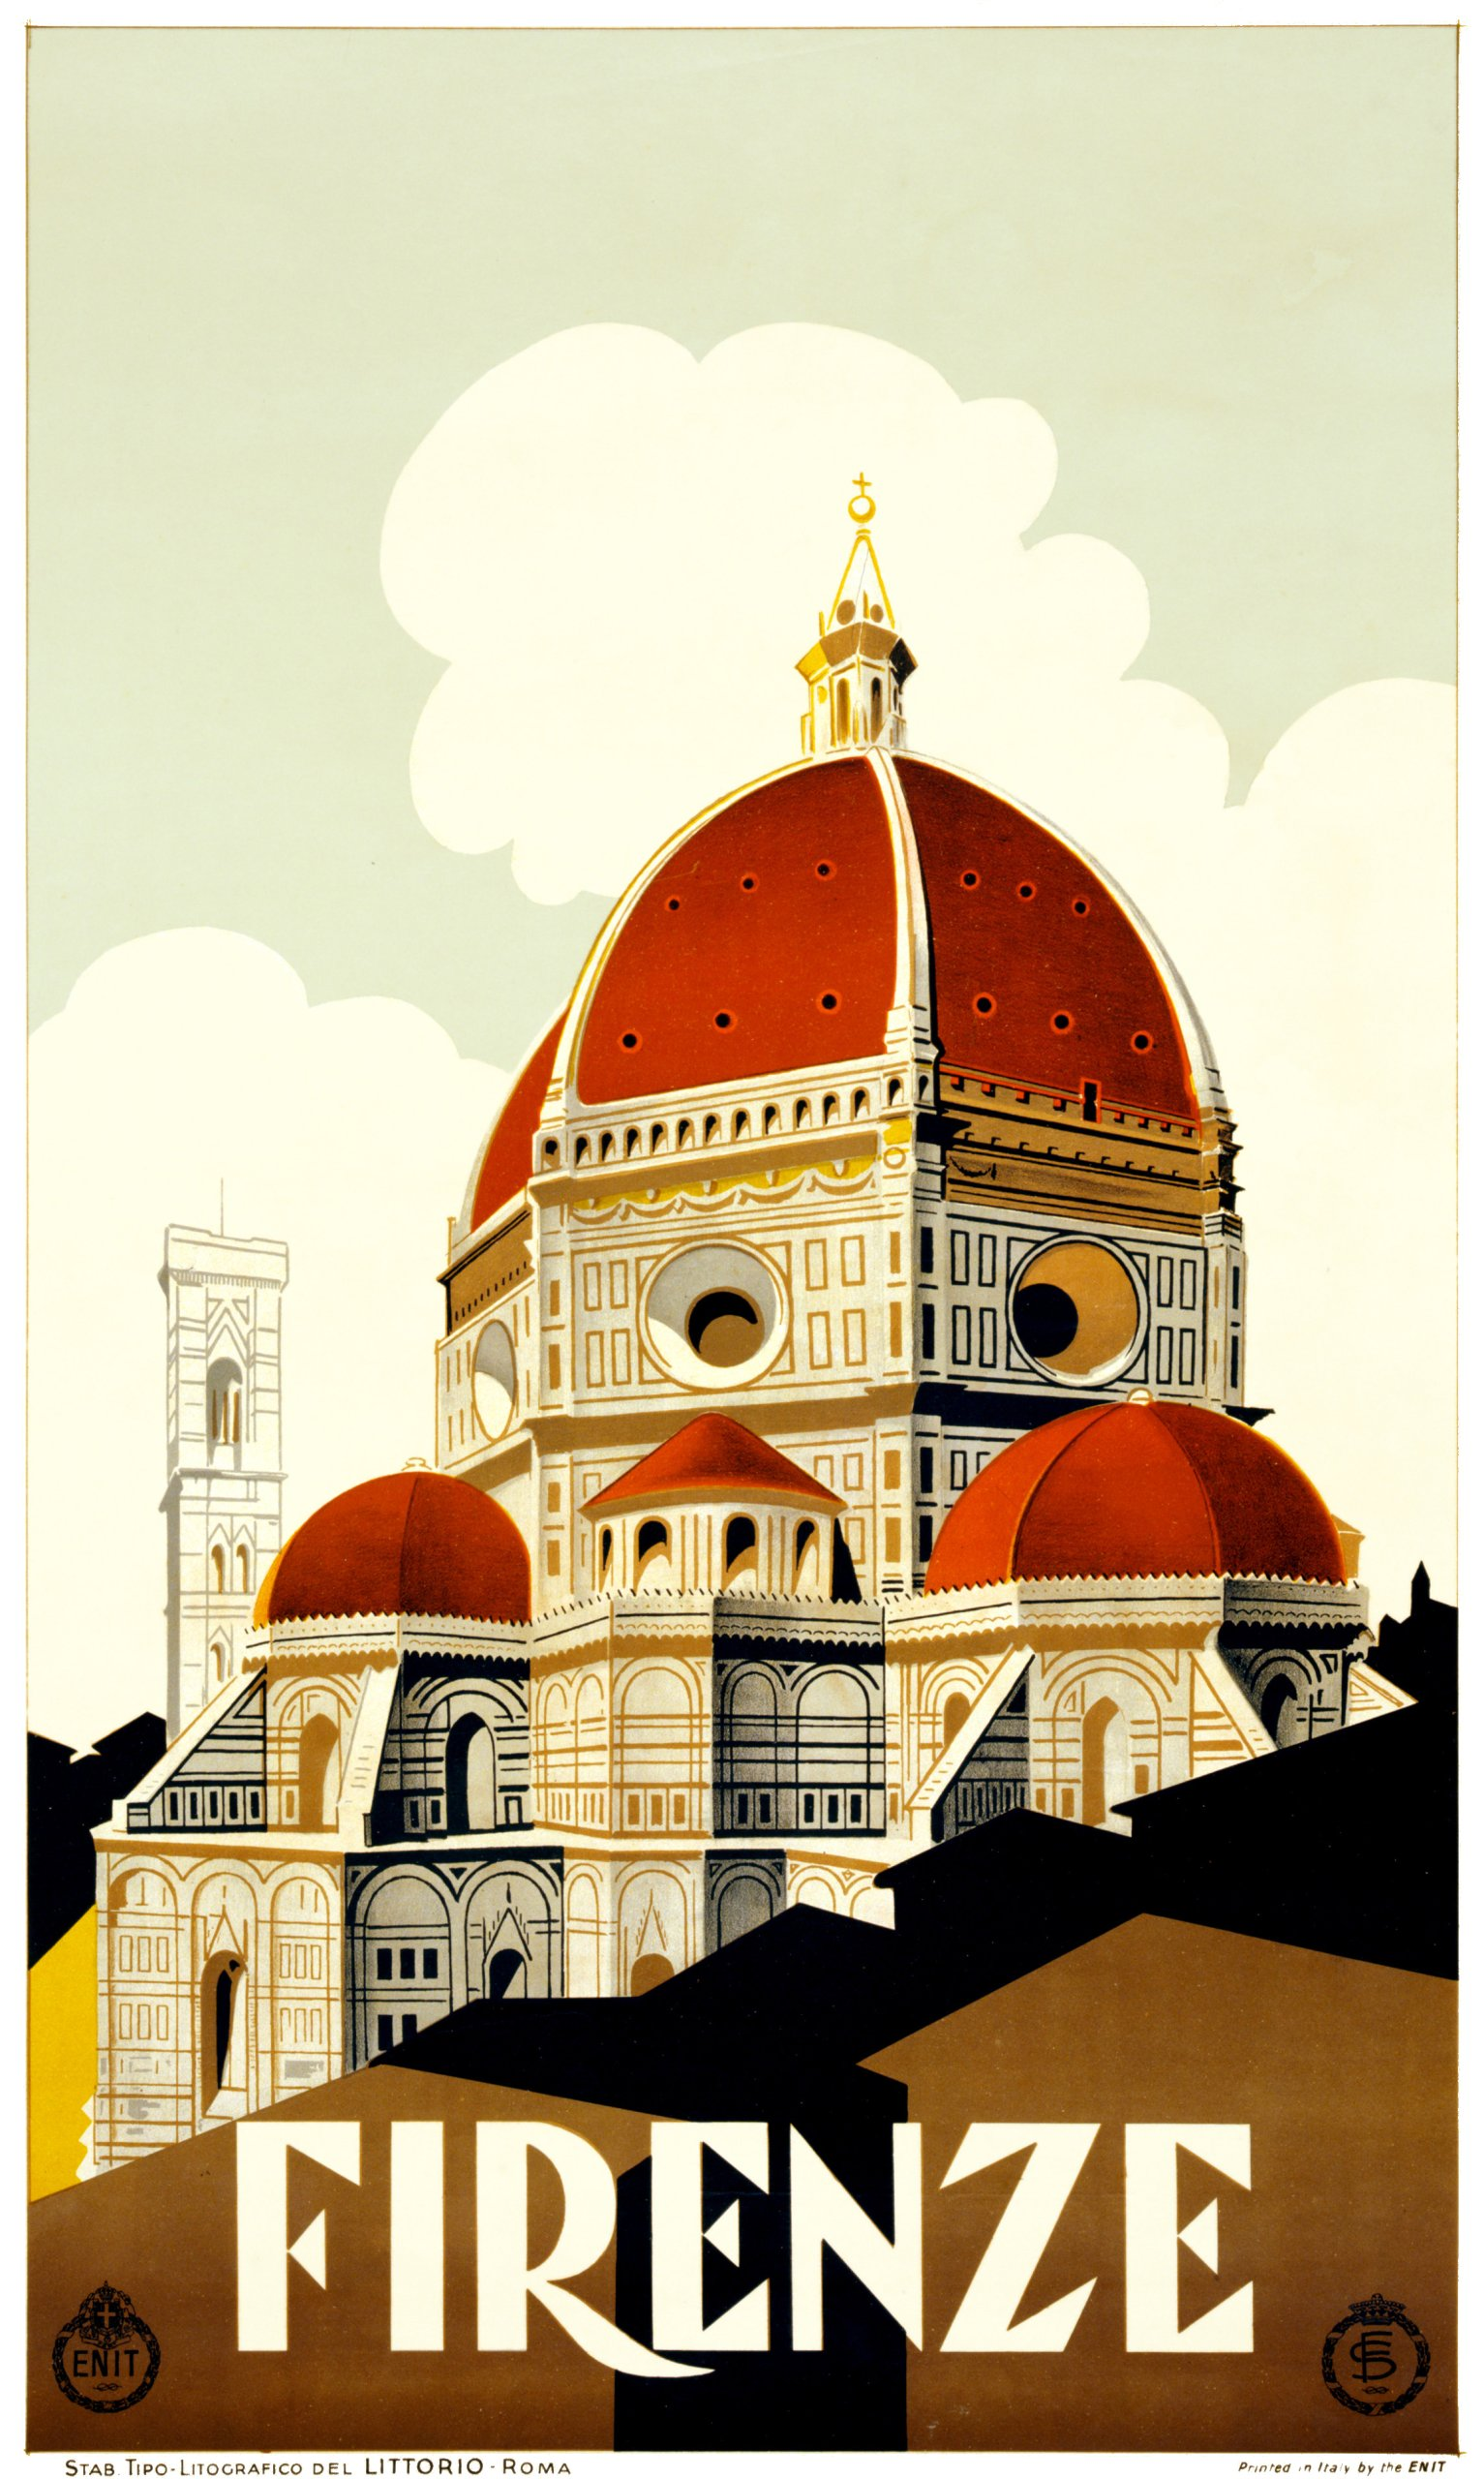 Item travel poster of FLORENCE, Italy